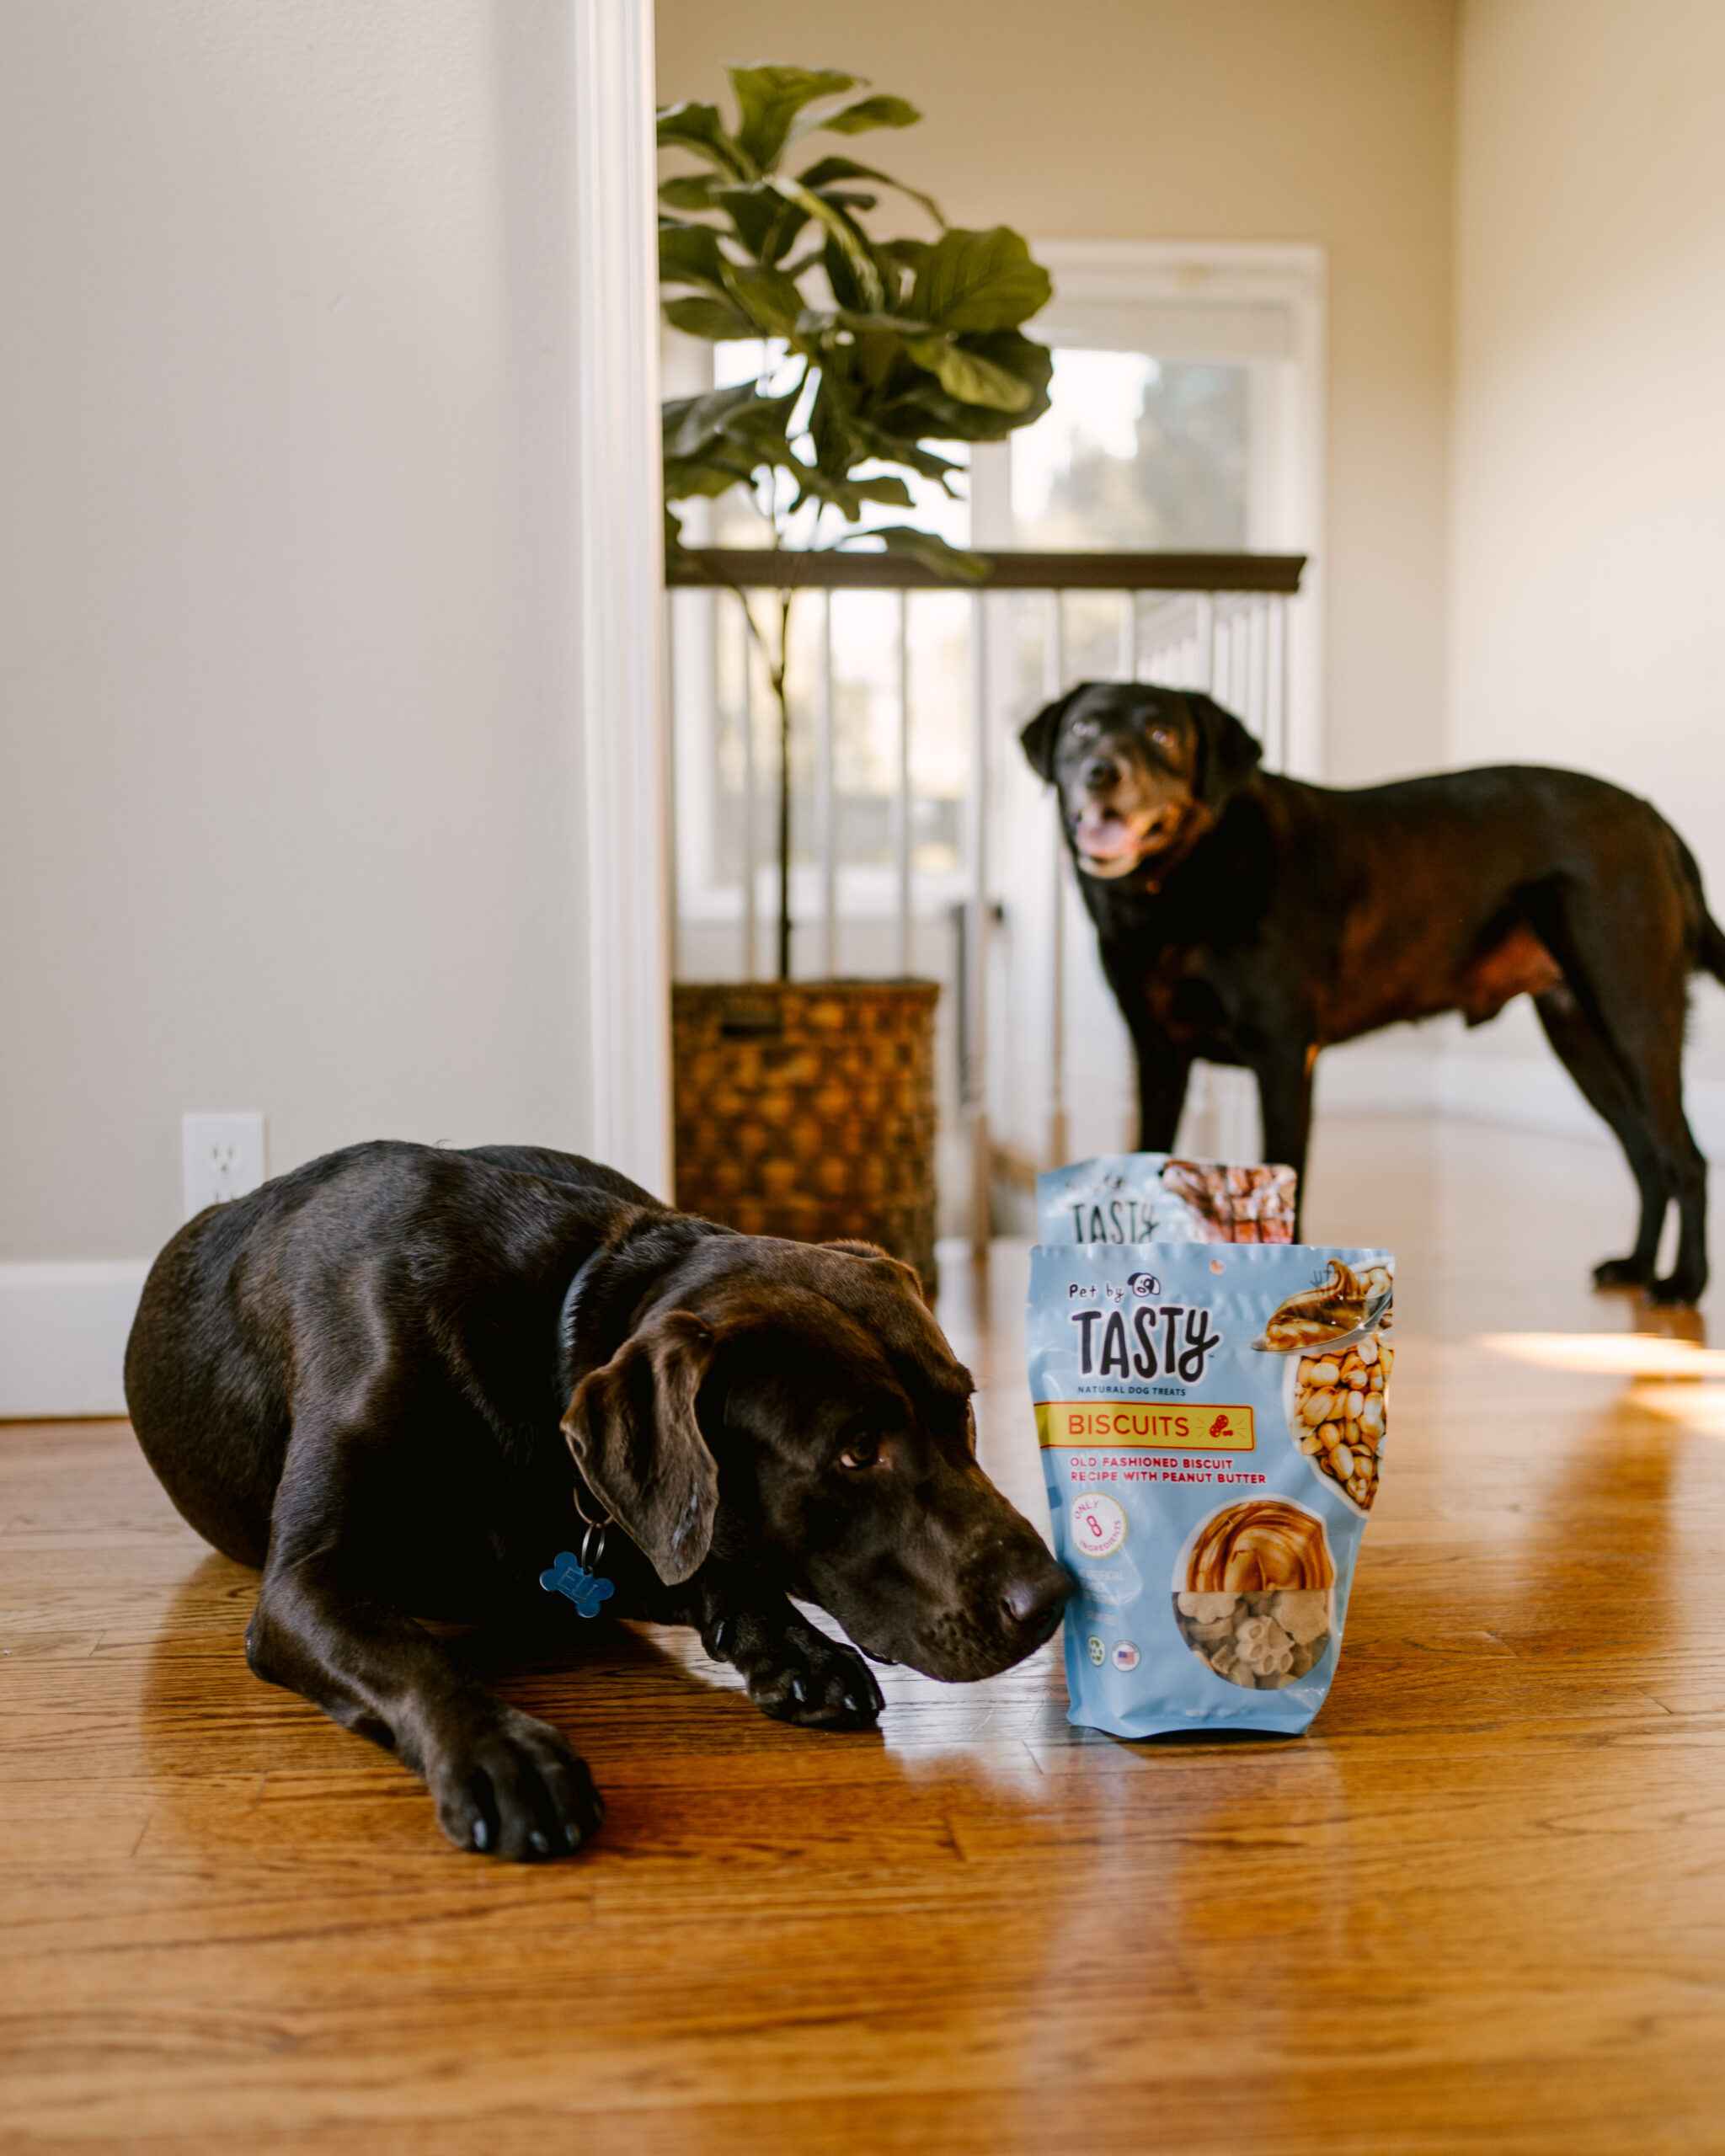 Ruthie Ridley Blog Tasty Treats For Your Pets At Target